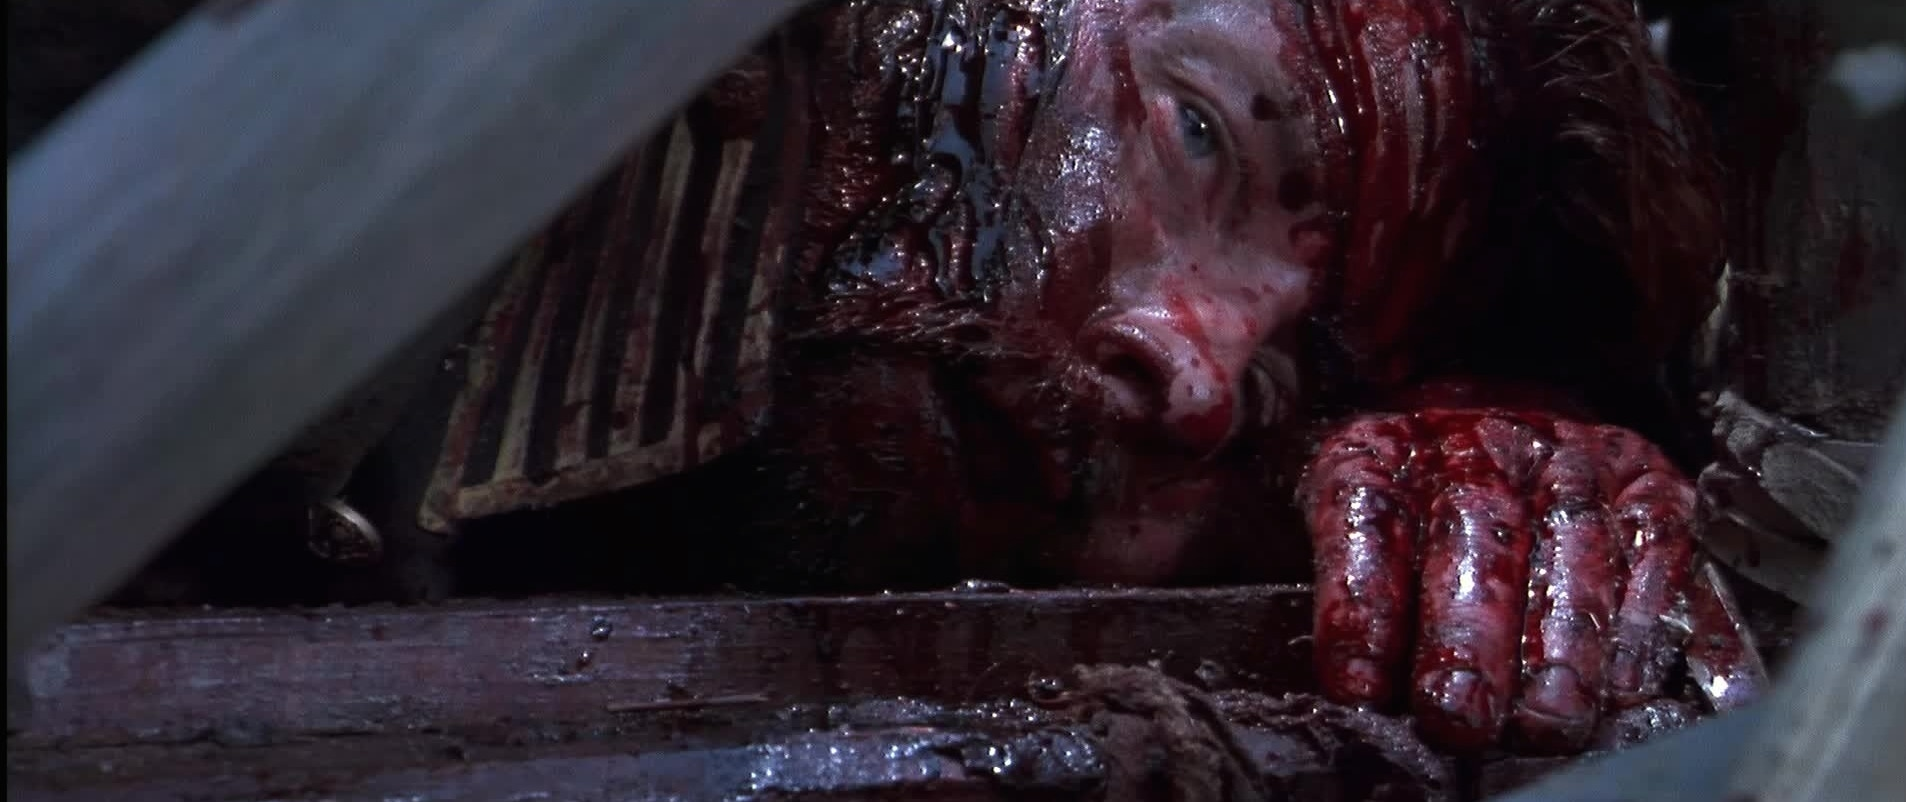 2 2 - Who Goes There Podcast: Ep 144 - Ravenous w/ Teflon Dave of Horror Section